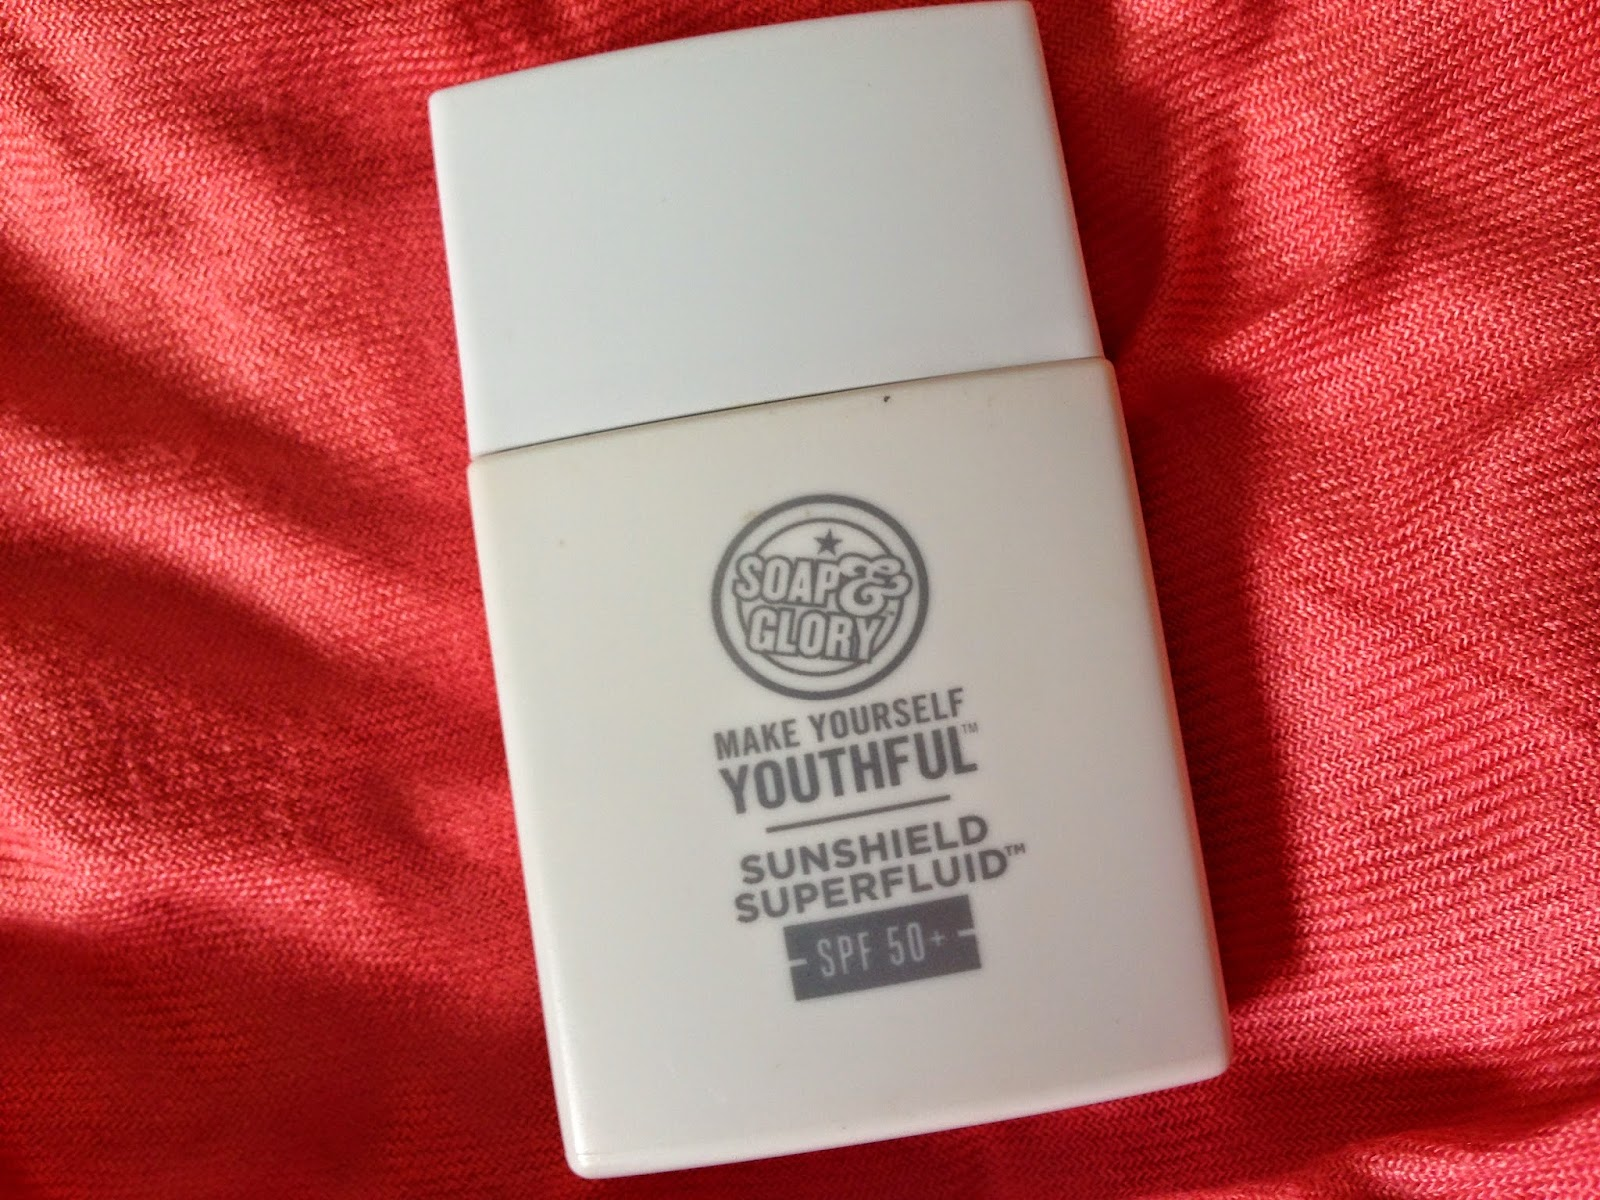 SOAP & GLORY MAKE YOURSELF YOUTHFUL SUNSHIELD SUPERFLUID